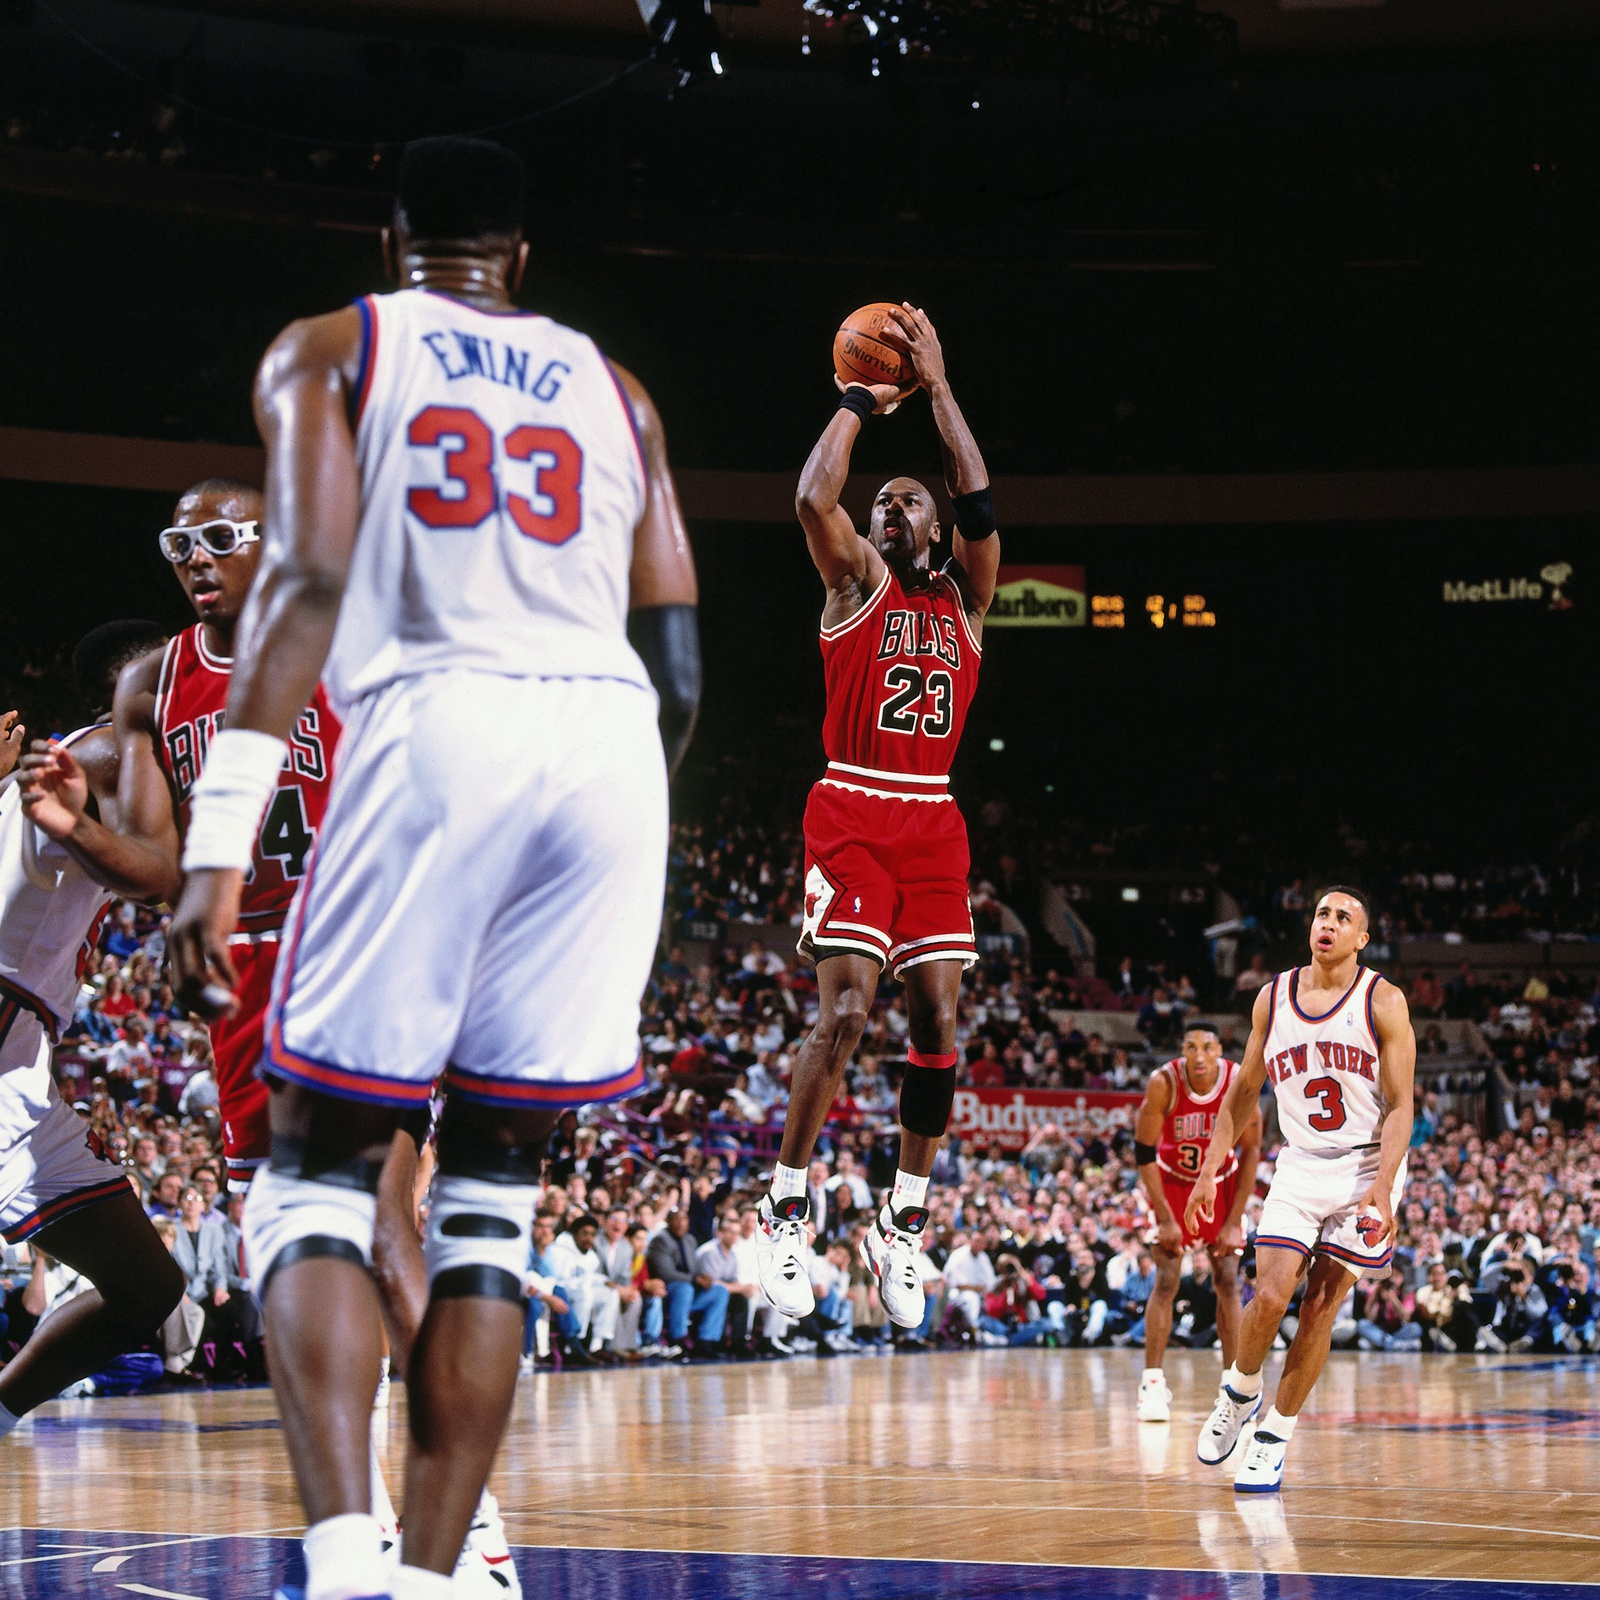 Michael Jordan #23 of the Chicago Bulls shoots against the New York Knicks circa 1991 at Madison Square Garden in New York.